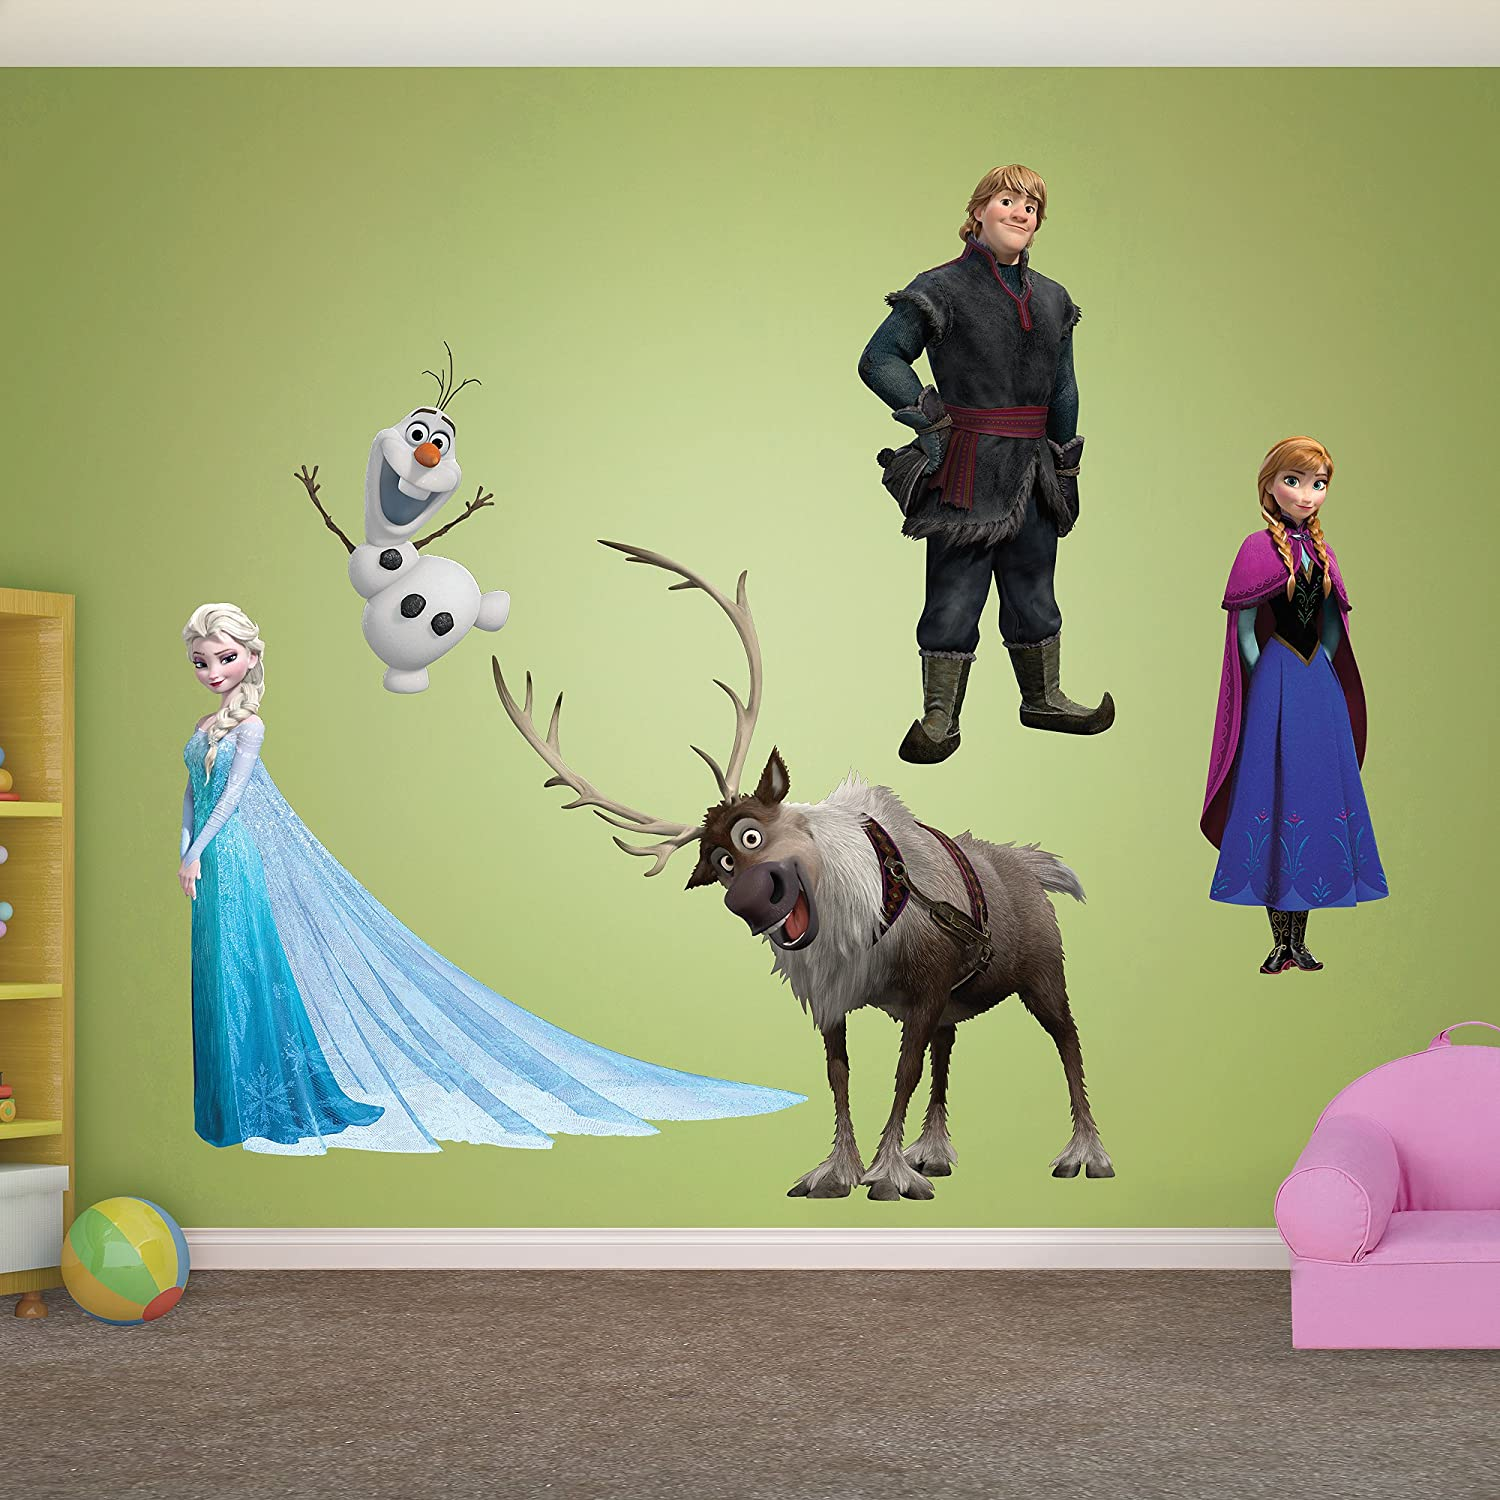 High Quality Amazon.com: Fathead Wall Decal, Real Big,  Part 22